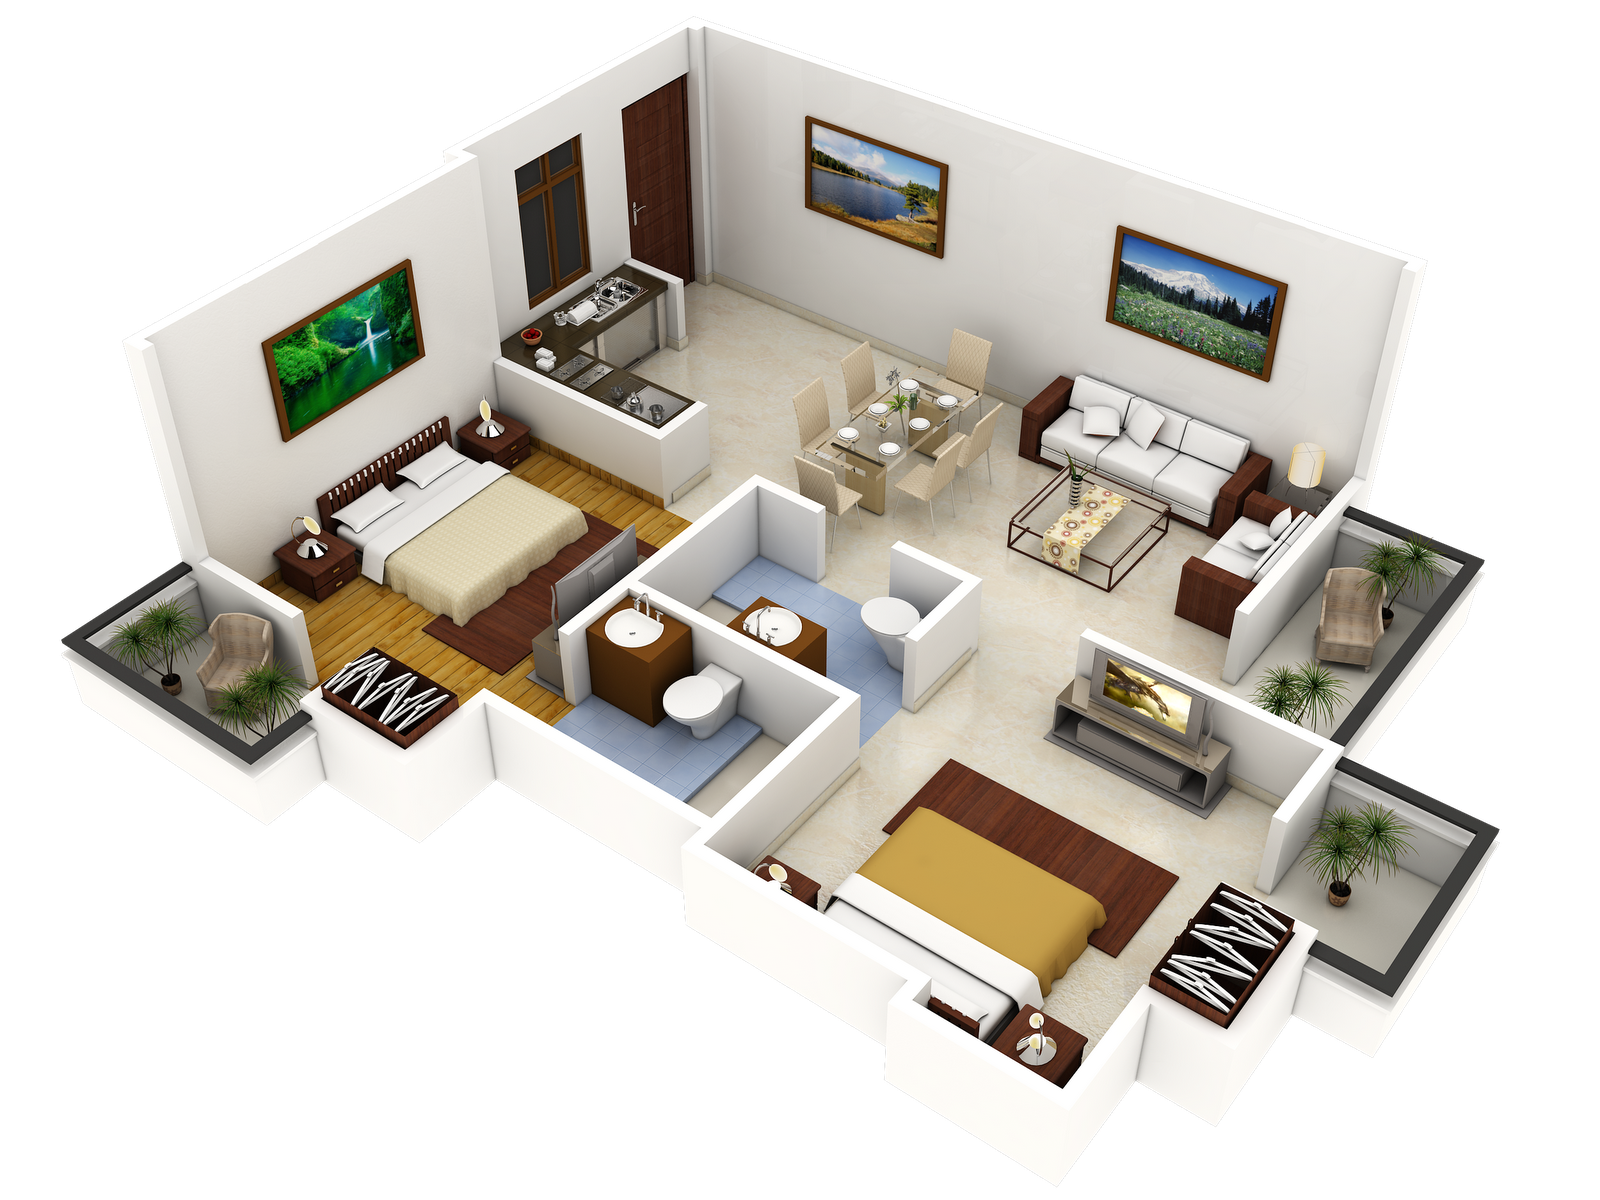 2 Bedroom Basement Apartment Plans